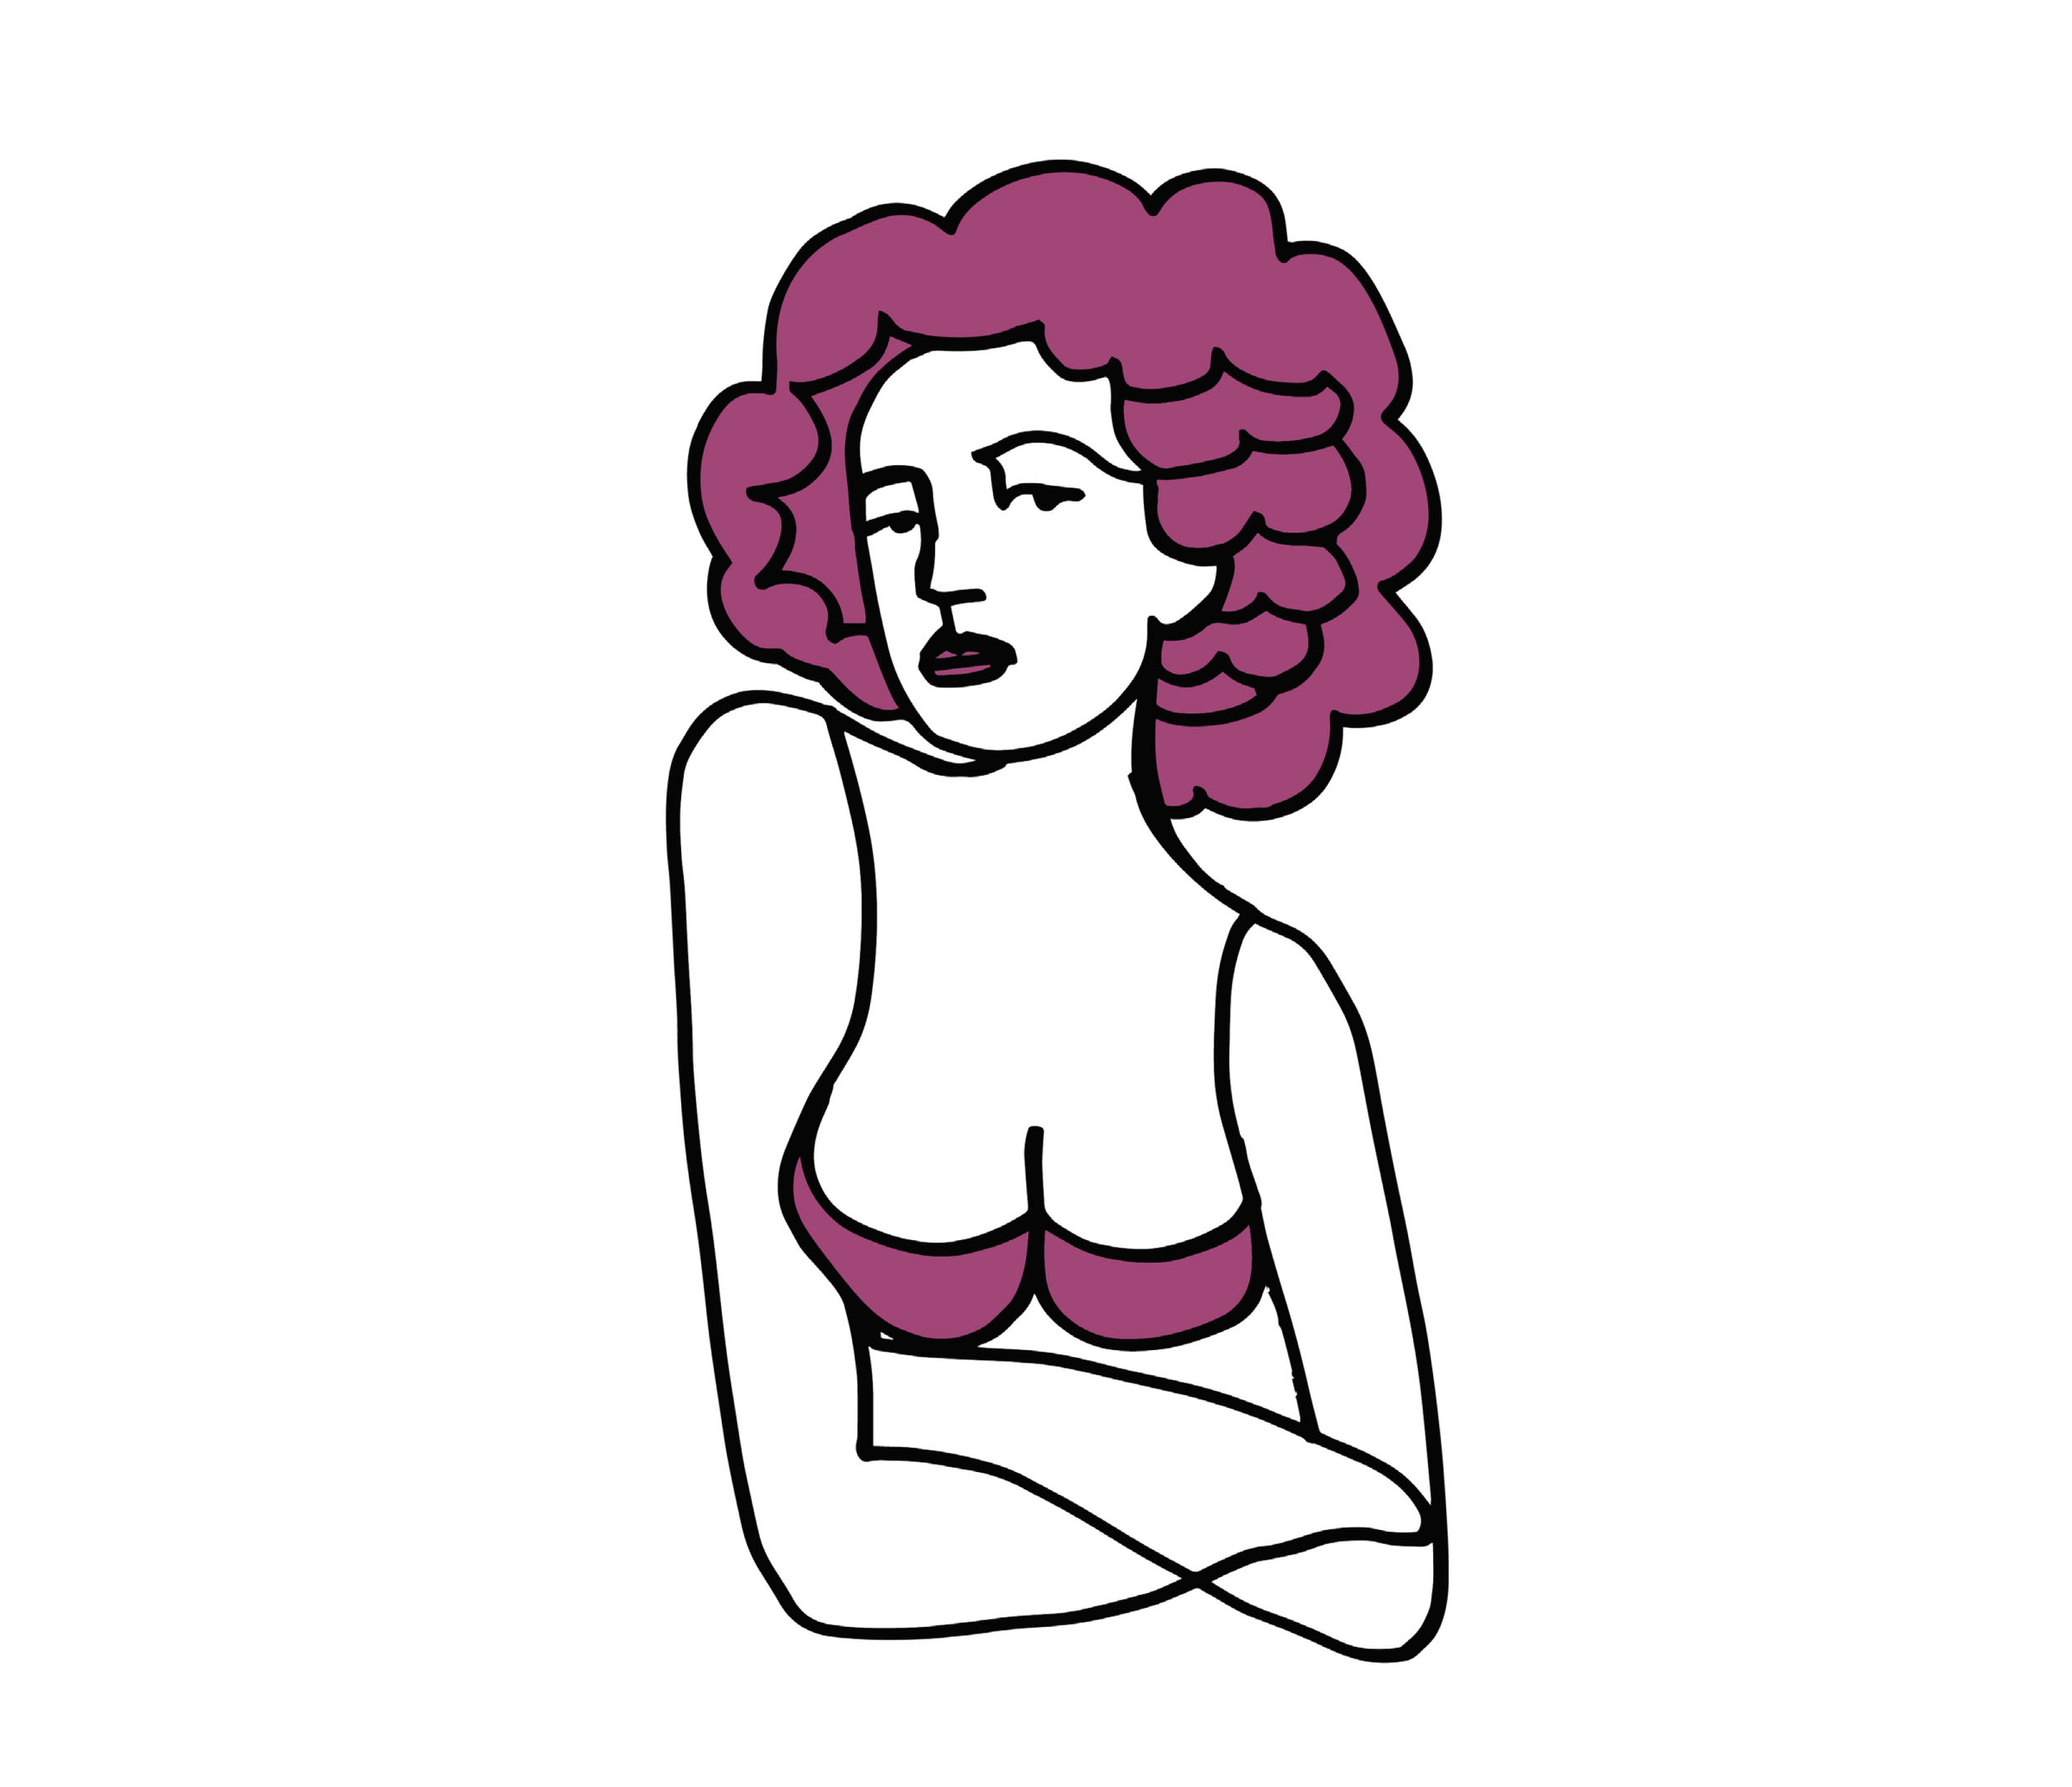 Kendra_Shedenhelm_ContinuousLineDrawing_Woman_PurpleBra